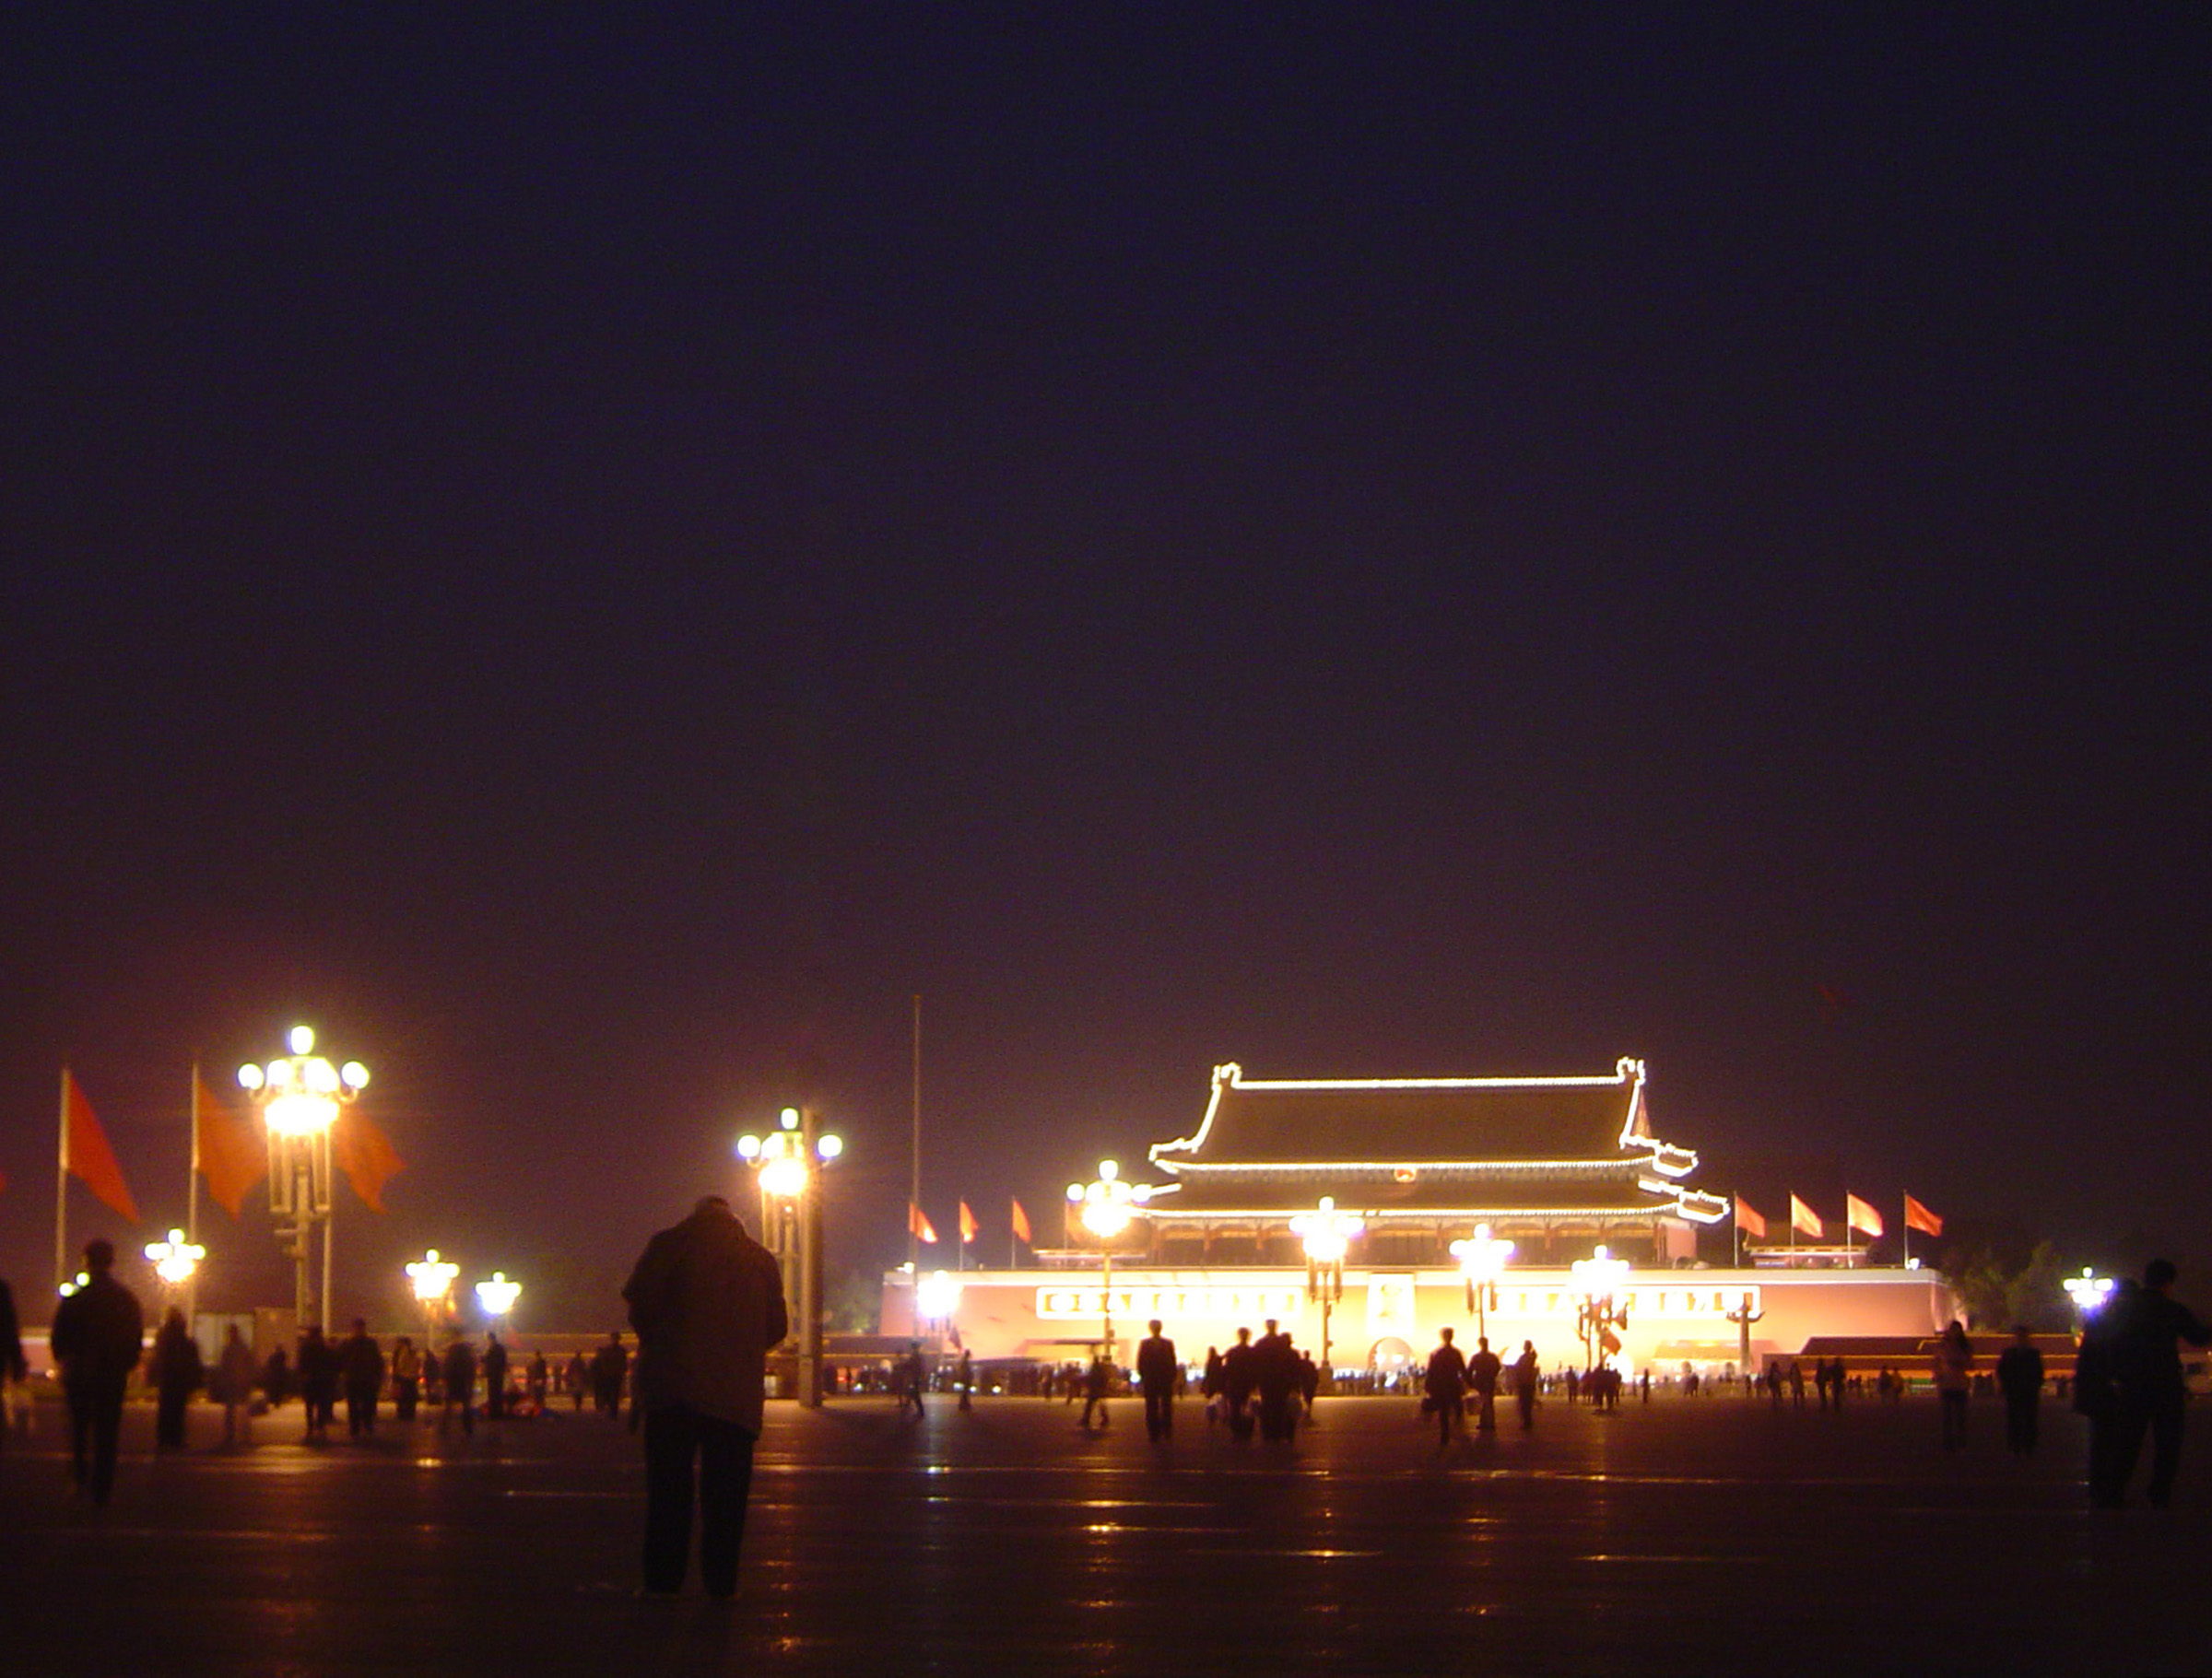 Beautiful Lights of Forbidden Palace in Beijing China at Night Time. Captured with Random Tourists.